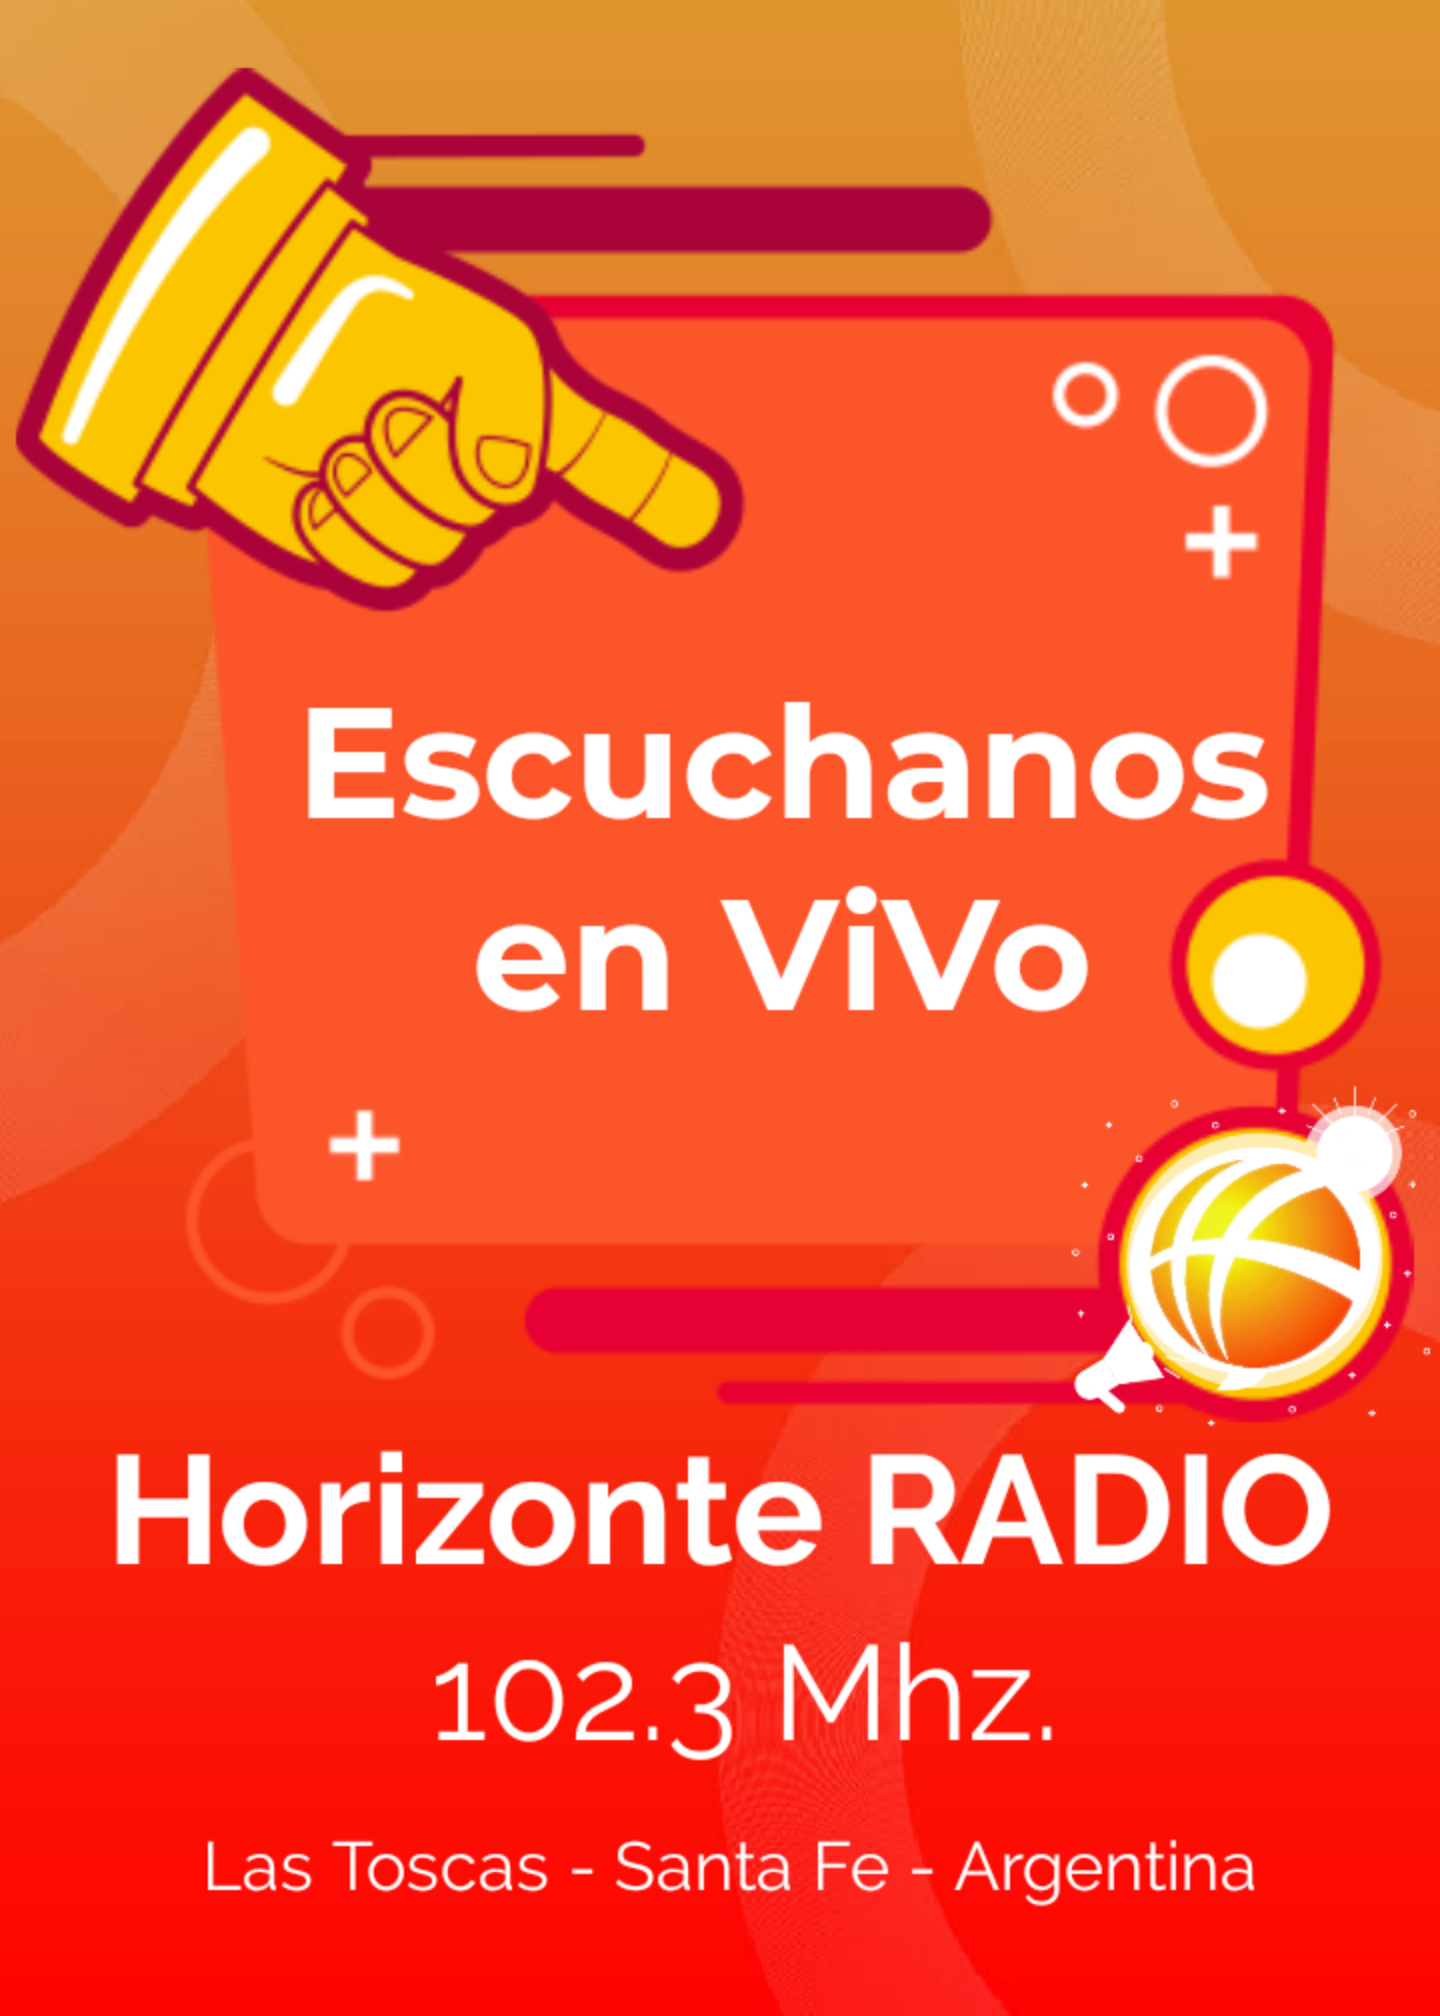 Radio escuchanos